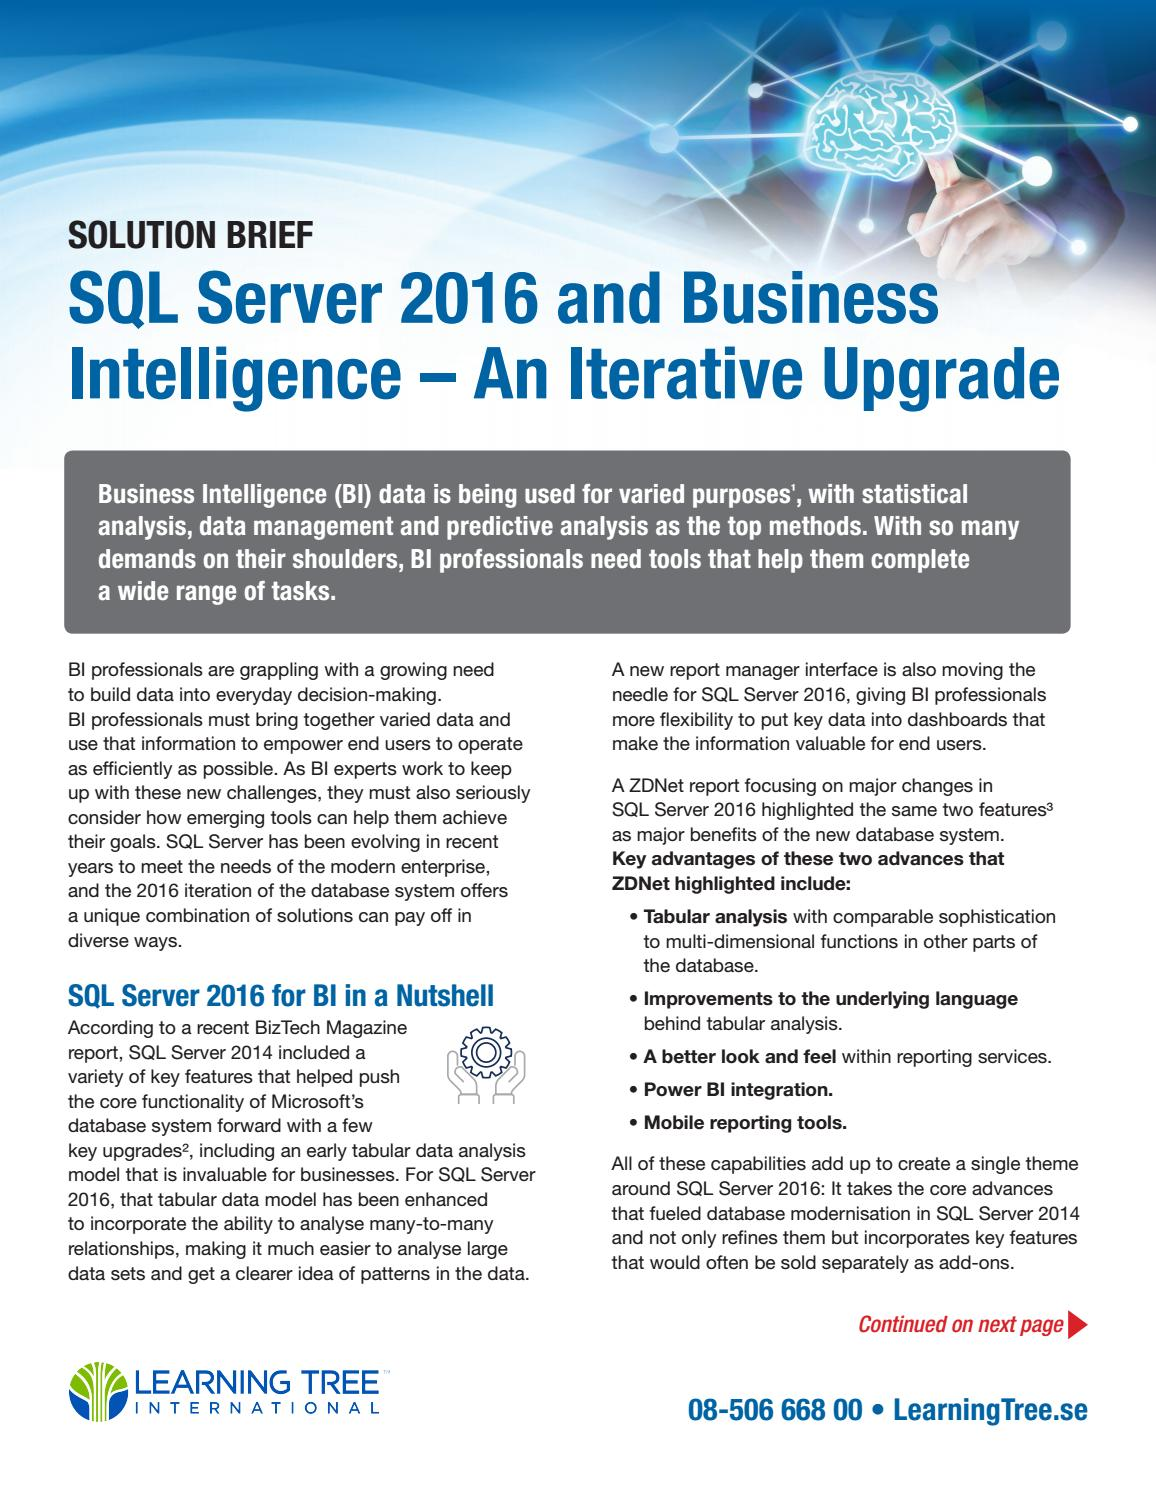 SQL Server 2016 & Business Intelligence - An Iterative